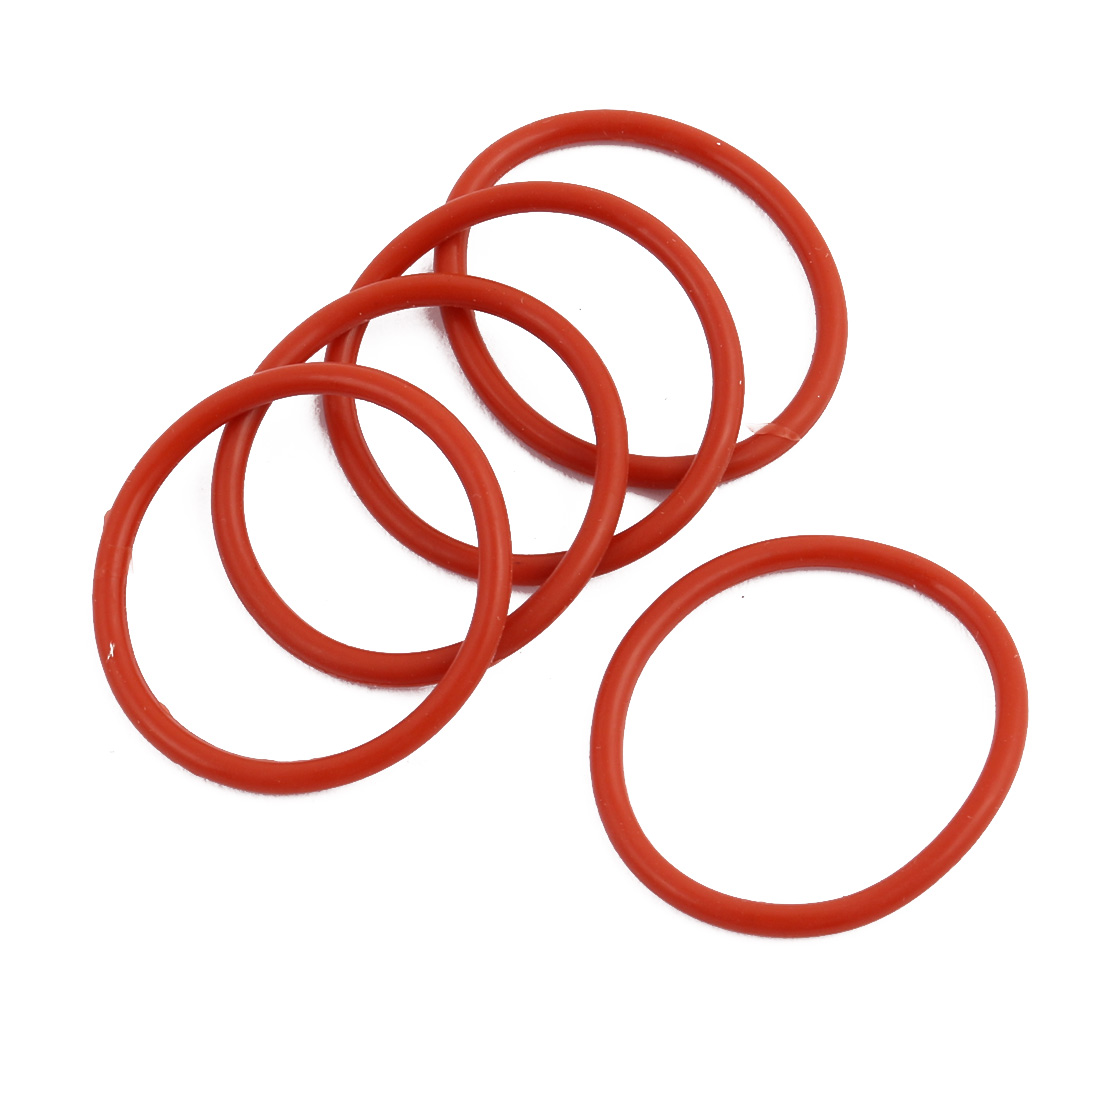 5Pcs Red Round Nitrile Butadiene Rubber NBR O-Ring 26mm OD 1.9mm Width